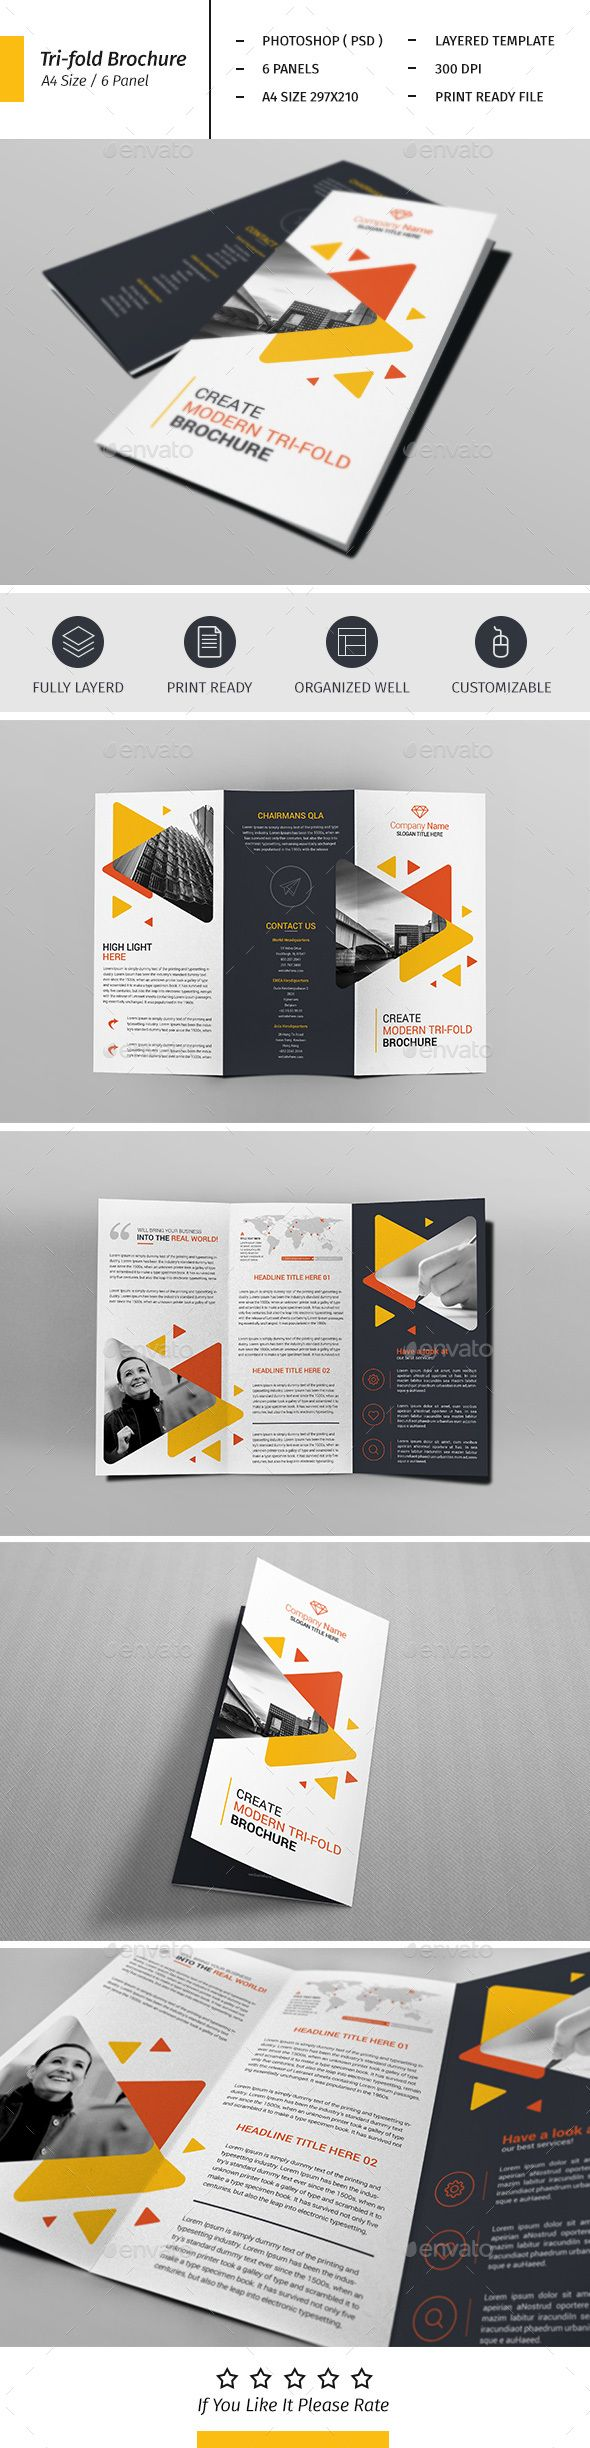 A4 Corporate Business Flyer Template PSD. Download here: https://graphicriver.net/item/a4-corporate-business-flyer-template-vol-02/17298509?ref=ksioks